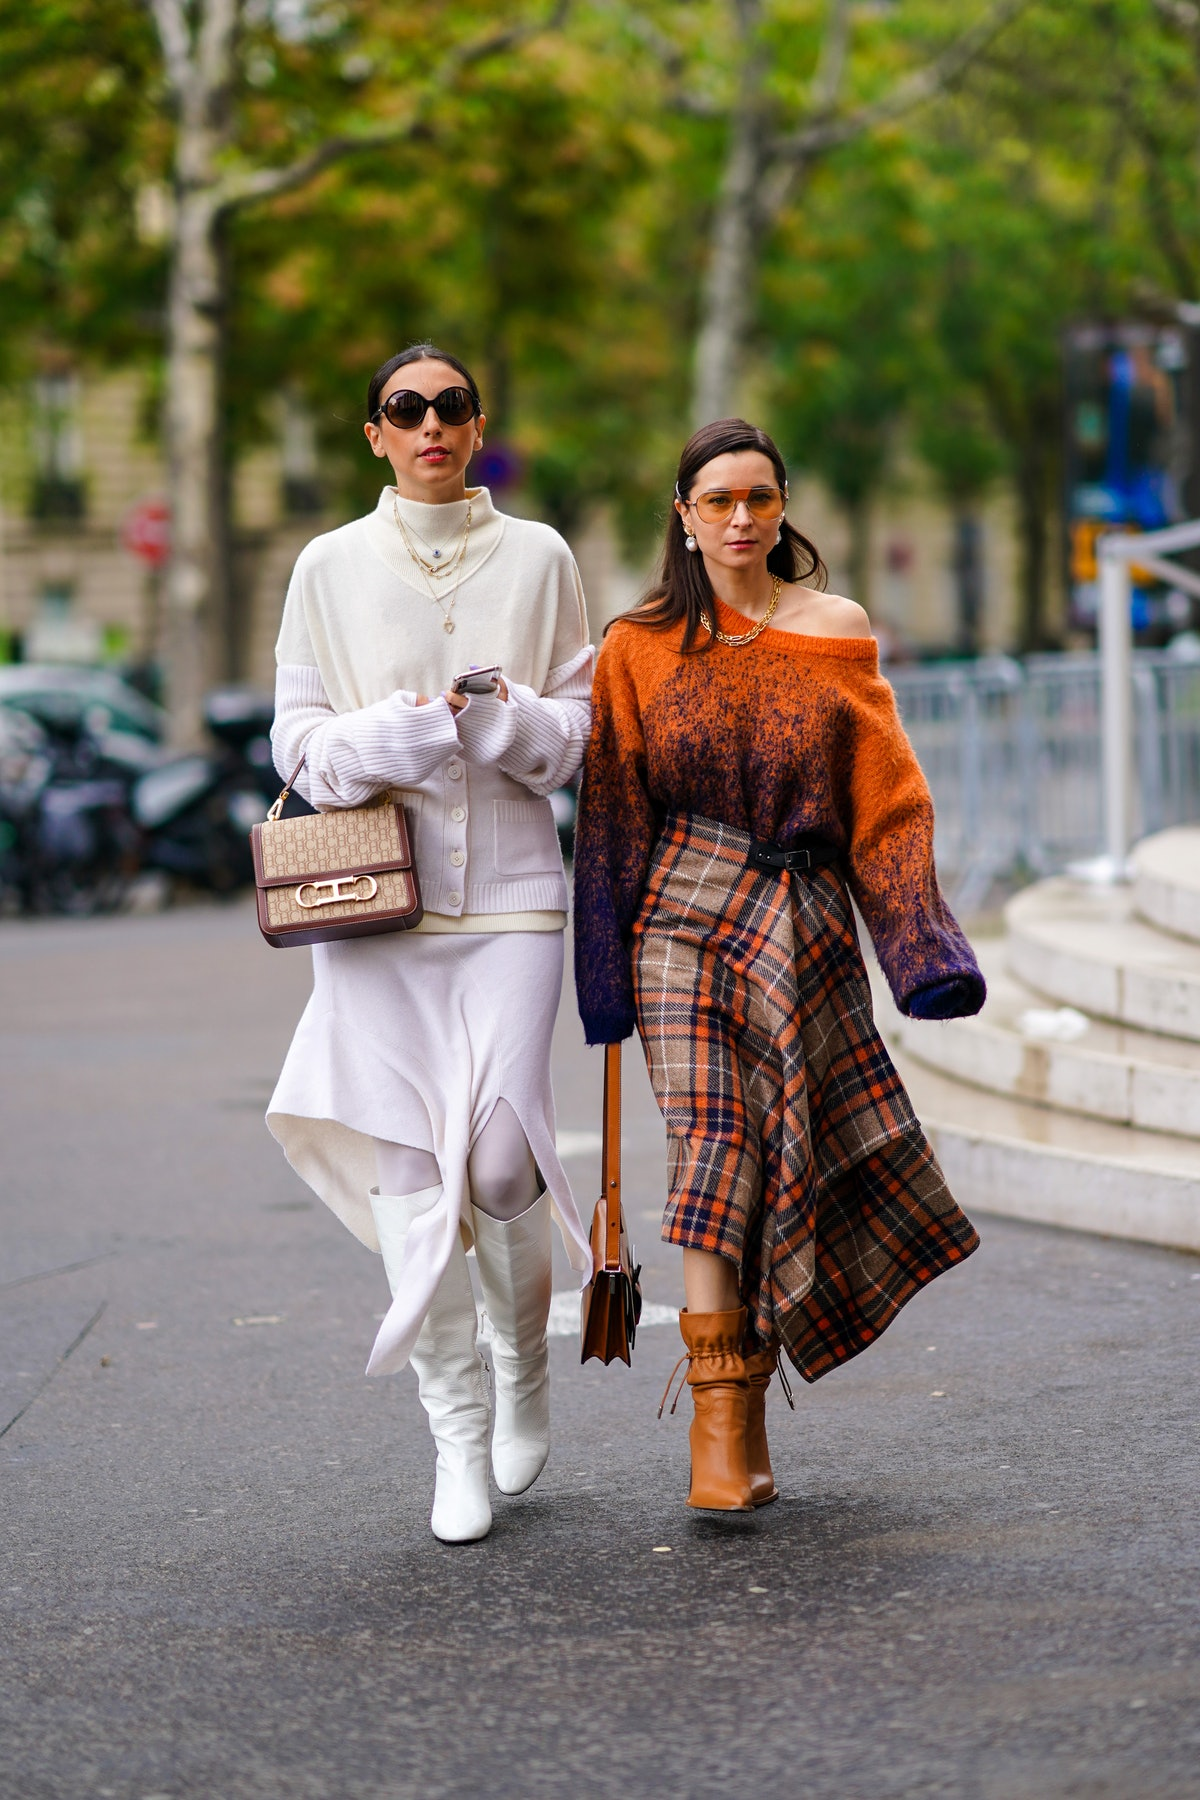 PARIS, FRANCE - OCTOBER 01: Gabriella Berdugo (L) wears sunglasses, necklaces, a cream color hi-neck sweater, a light mauve vest, a light mauve asymmetric skirt, a Carolina Herrera bag, white knee-high boots  ; Julia Comil (R) wears sunglasses, earrings, a golden necklace, an oversized orange and deep purple sweater, an asymmetric grey and orange plaid skirt, a brown bag, tan color pointy heeled mid-calf boots, outside Chloe, during Paris Fashion Week - Womenswear Spring Summer 2021, on October 01, 2020 in Paris, France. (Photo by Edward Berthelot/Getty Images)